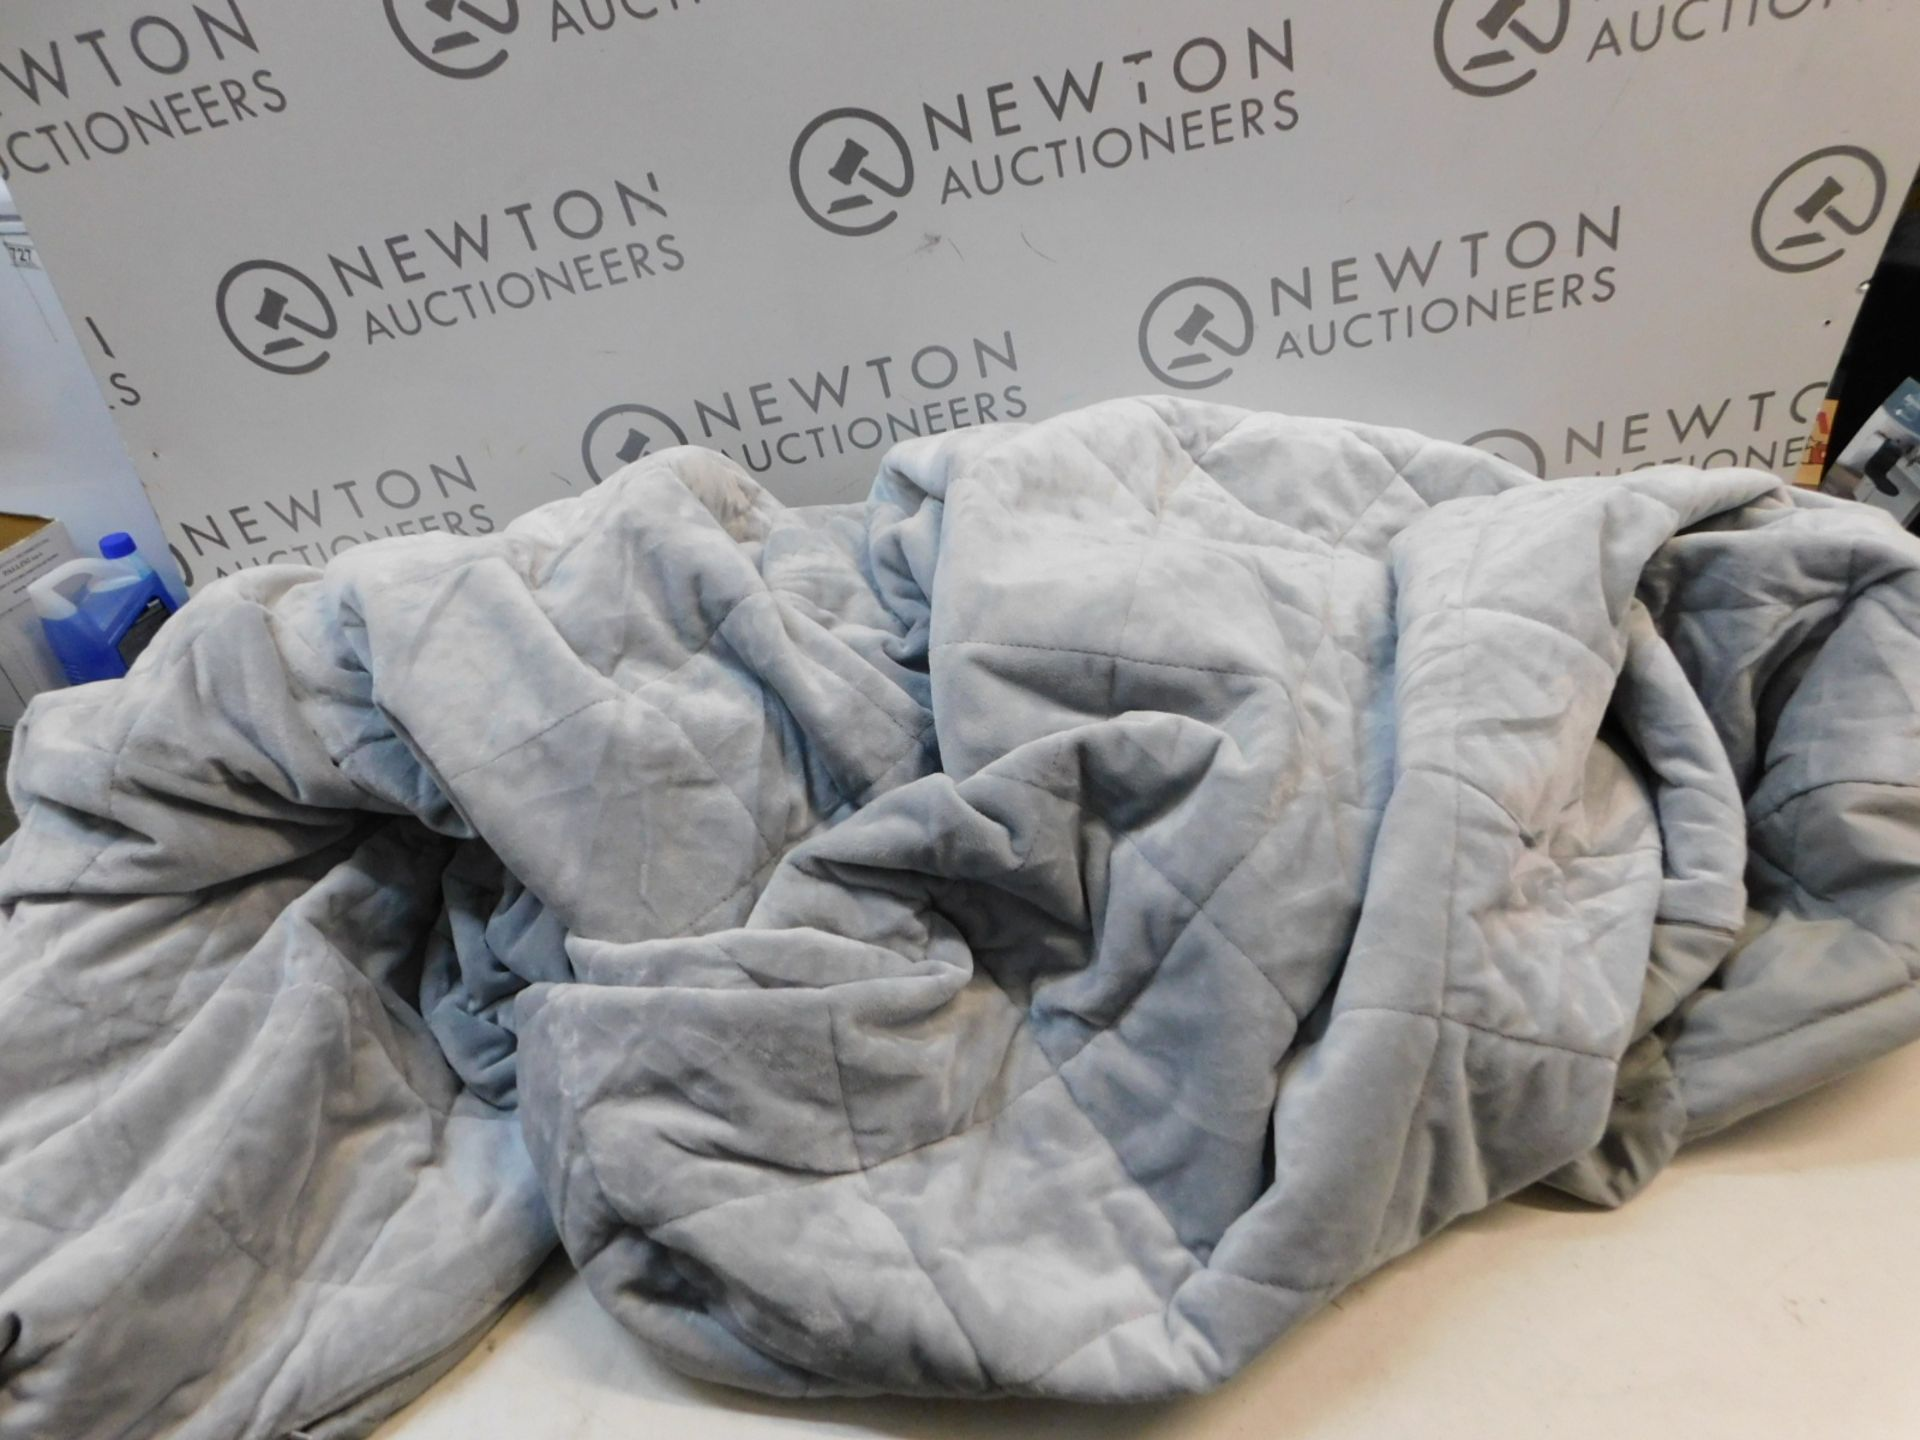 1 WEIGHTED BLANKET RRP £59.99